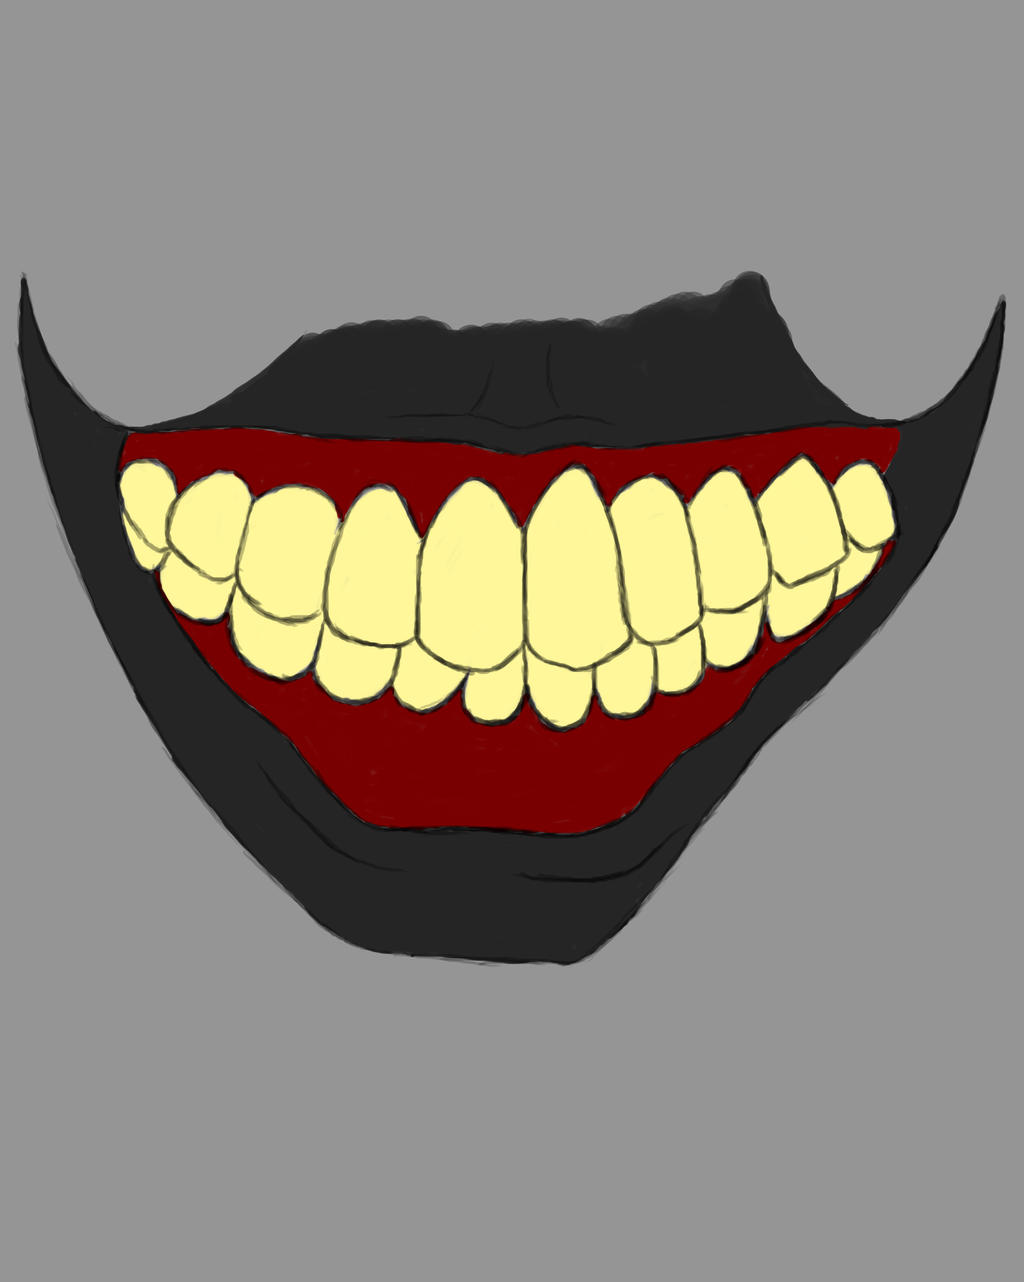 Smile Mouth Daily sketch #699 by GothicVampireFreak